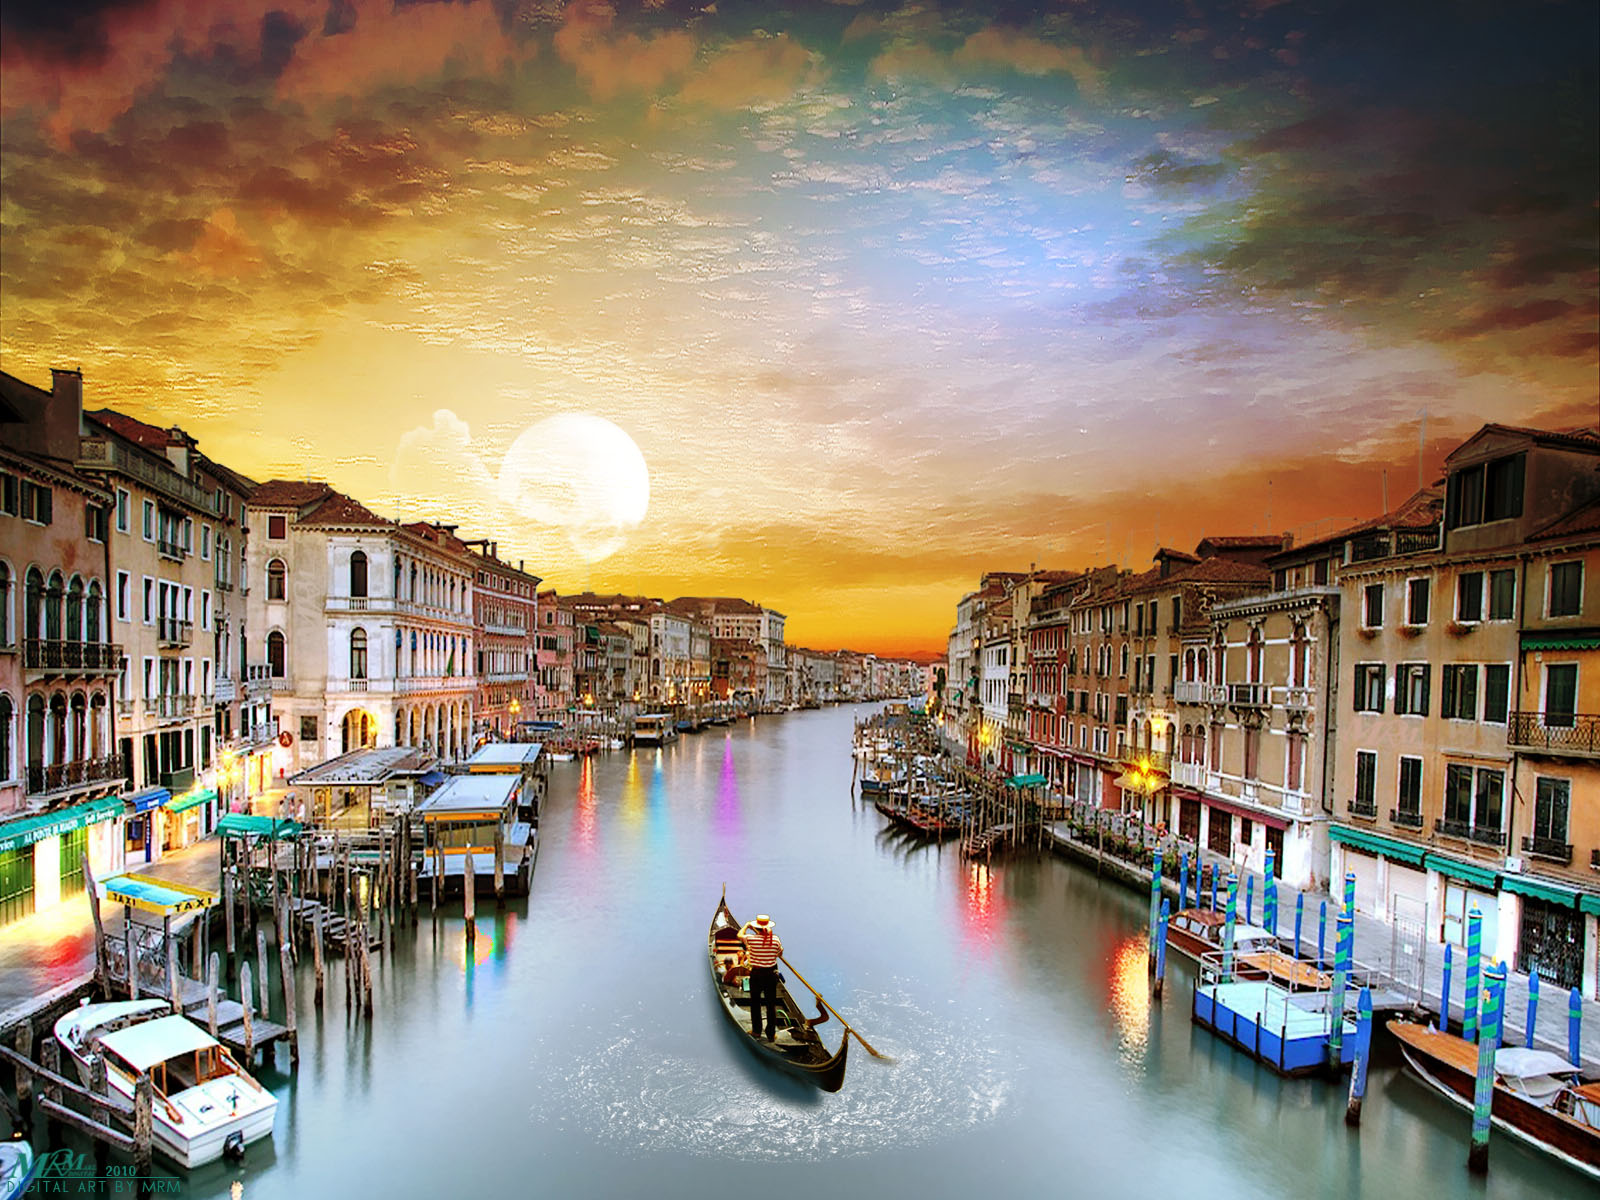 wallpaper.wiki-Venice-Italy-Wallpaper-Free-Download-PIC-WPE00399